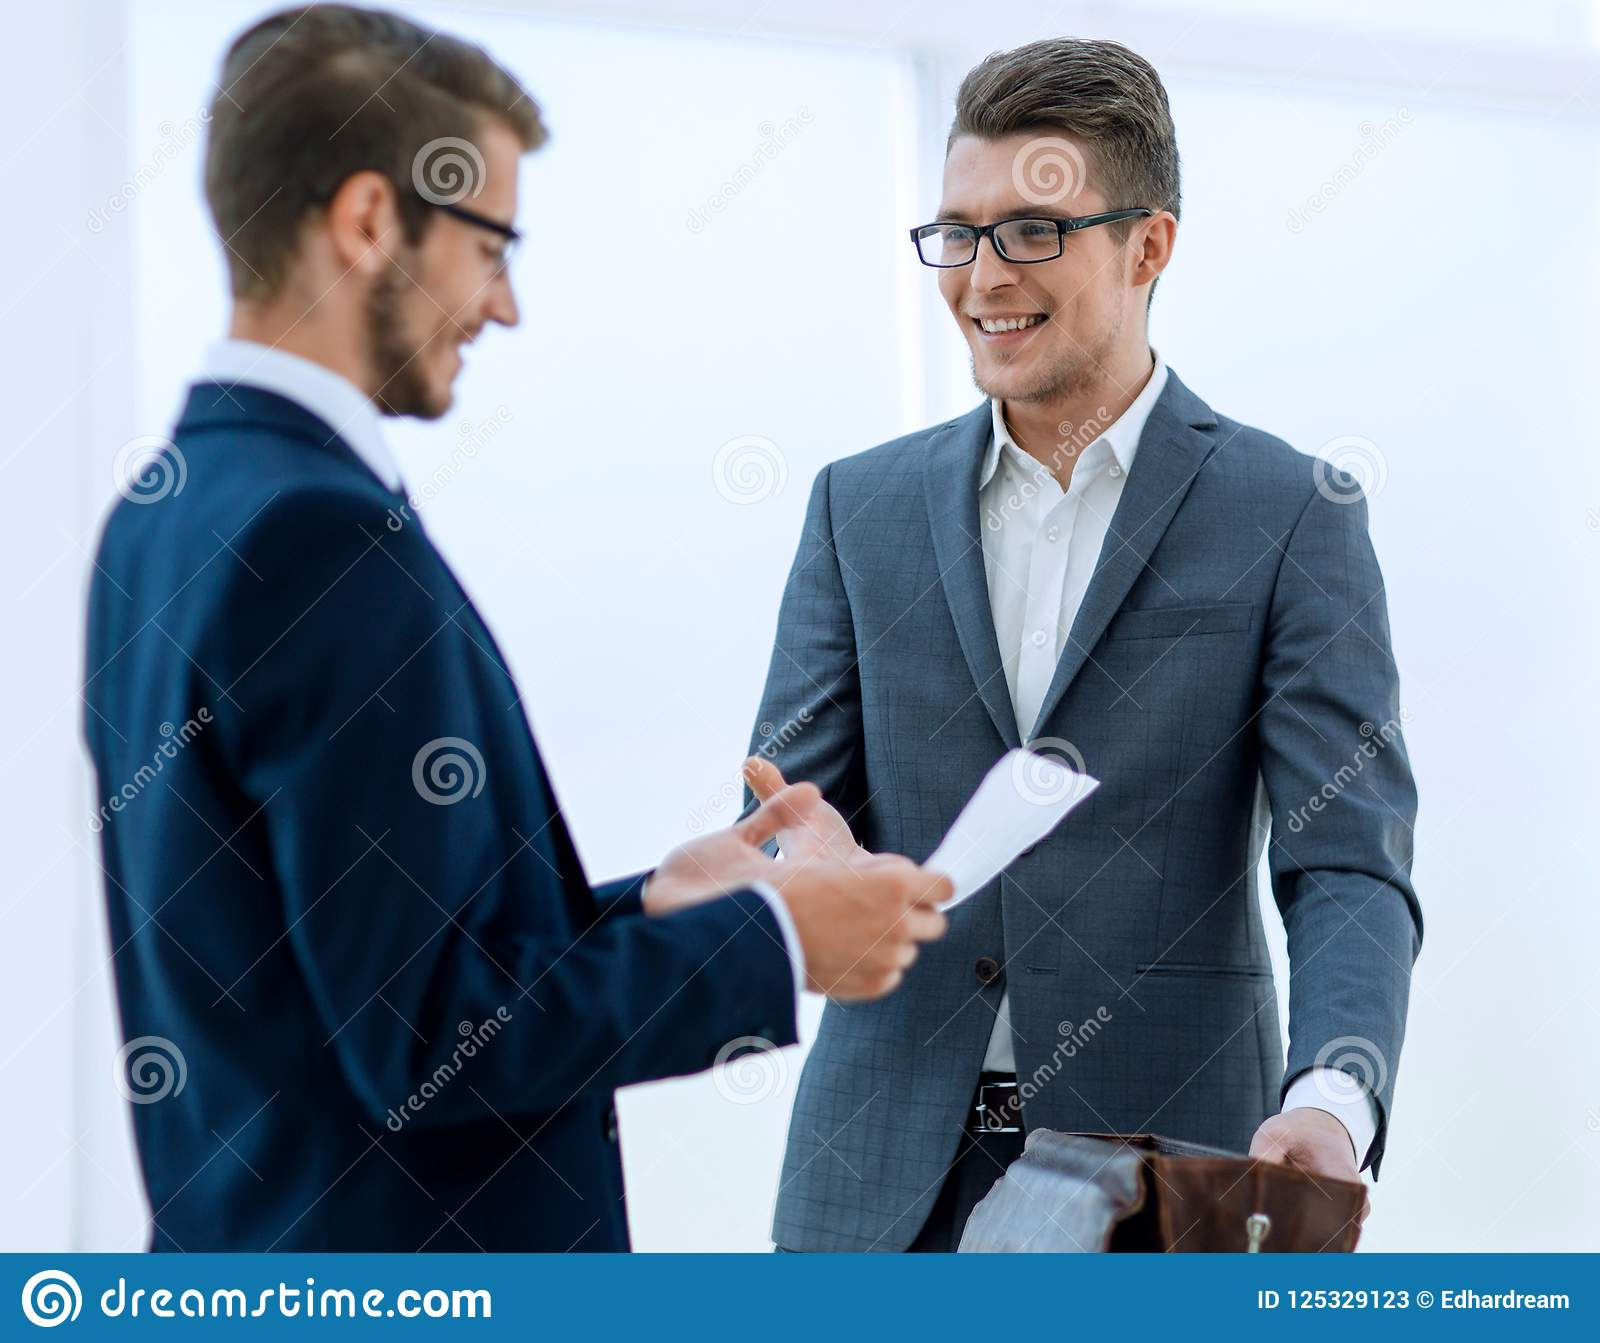 Business People Greet Each Other With A Handshake Stock Image